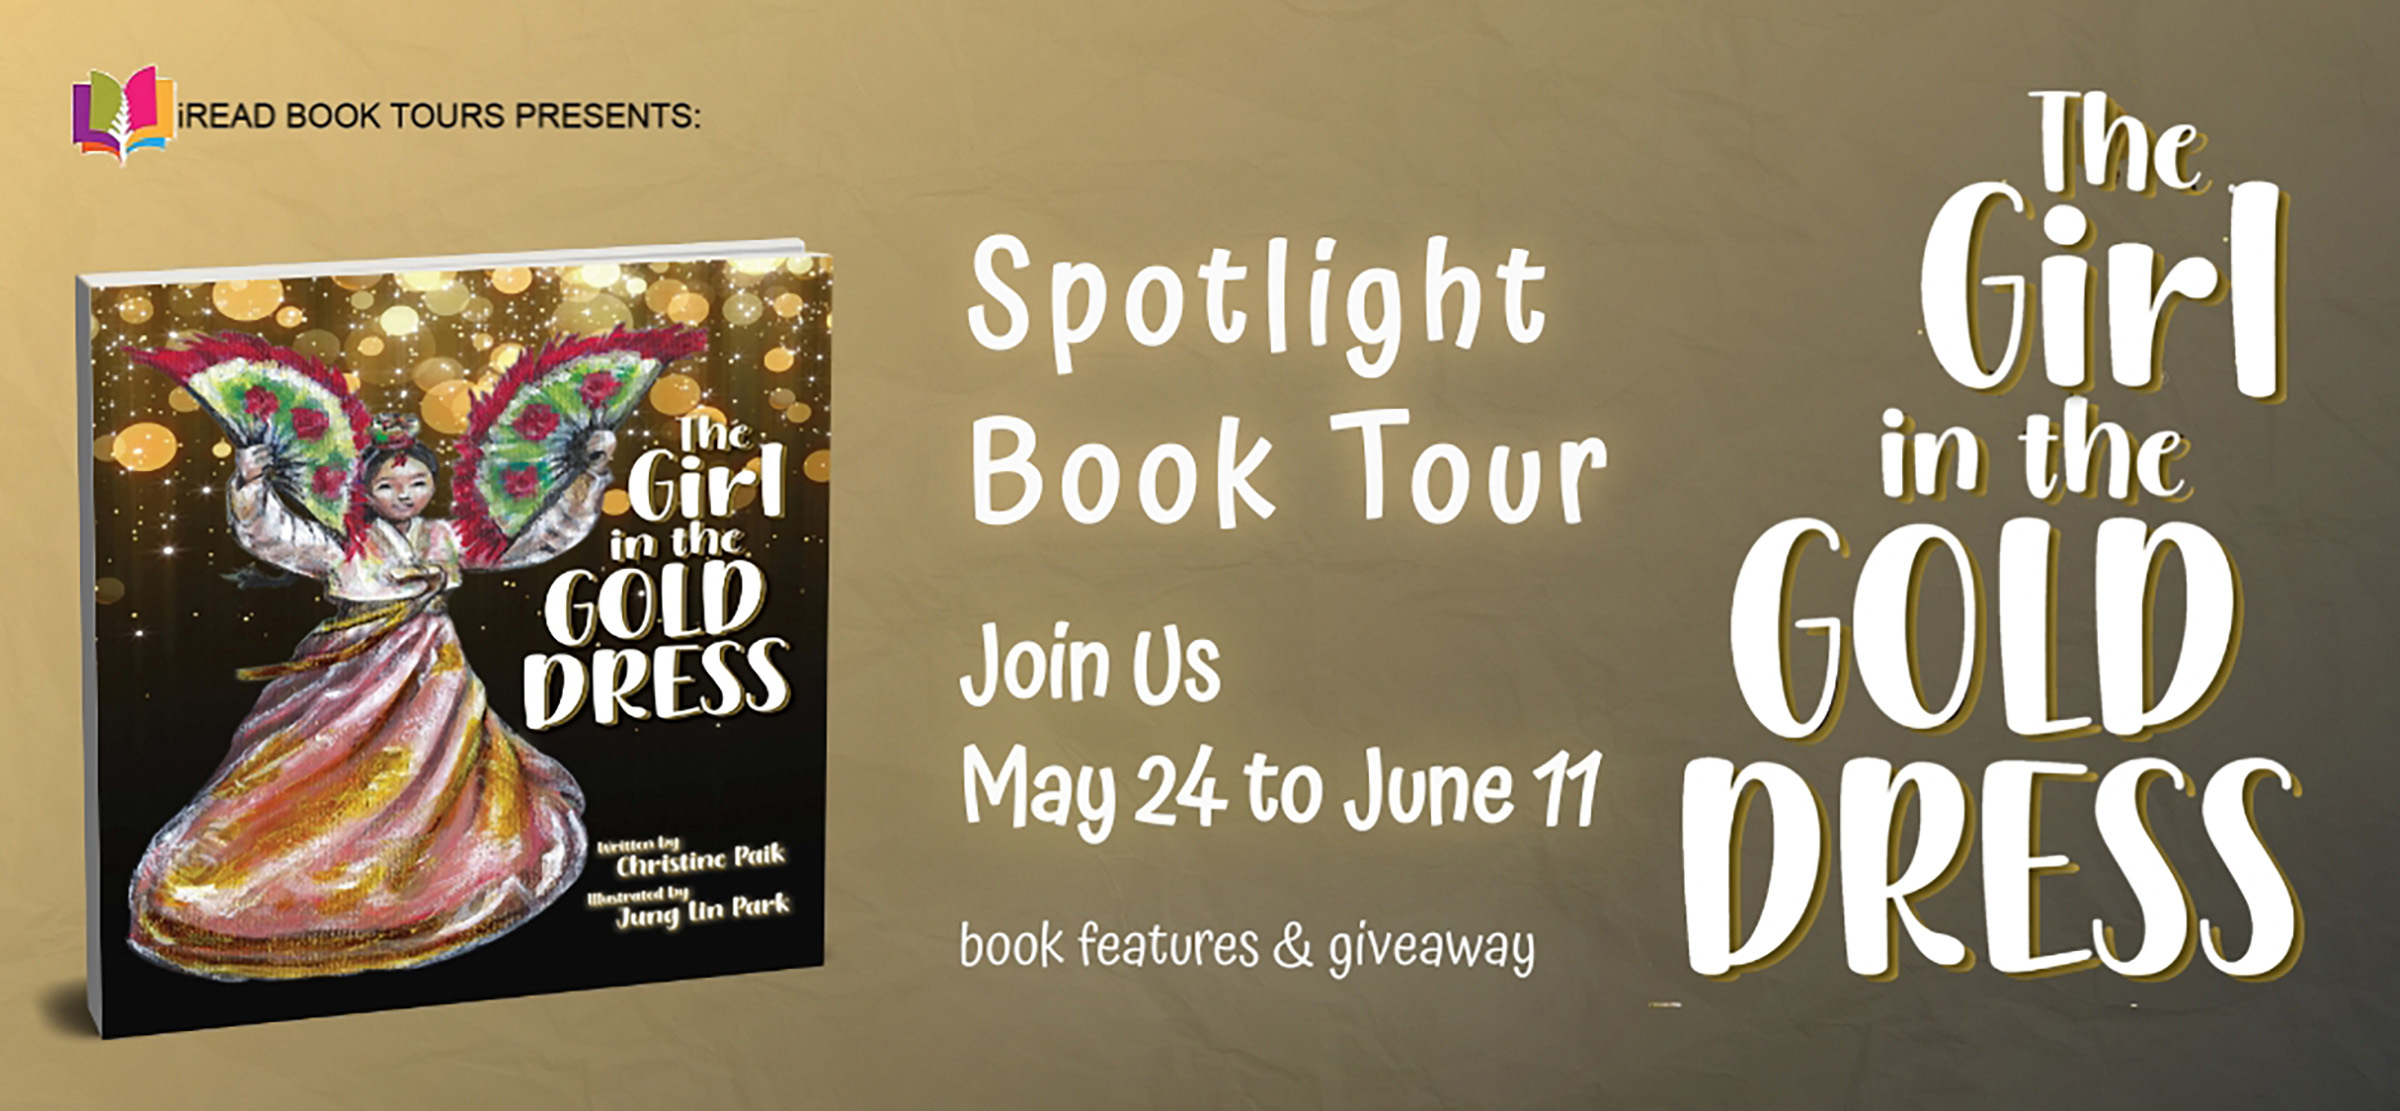 The Girl in the Gold Dress [Book Tour Spotlight]